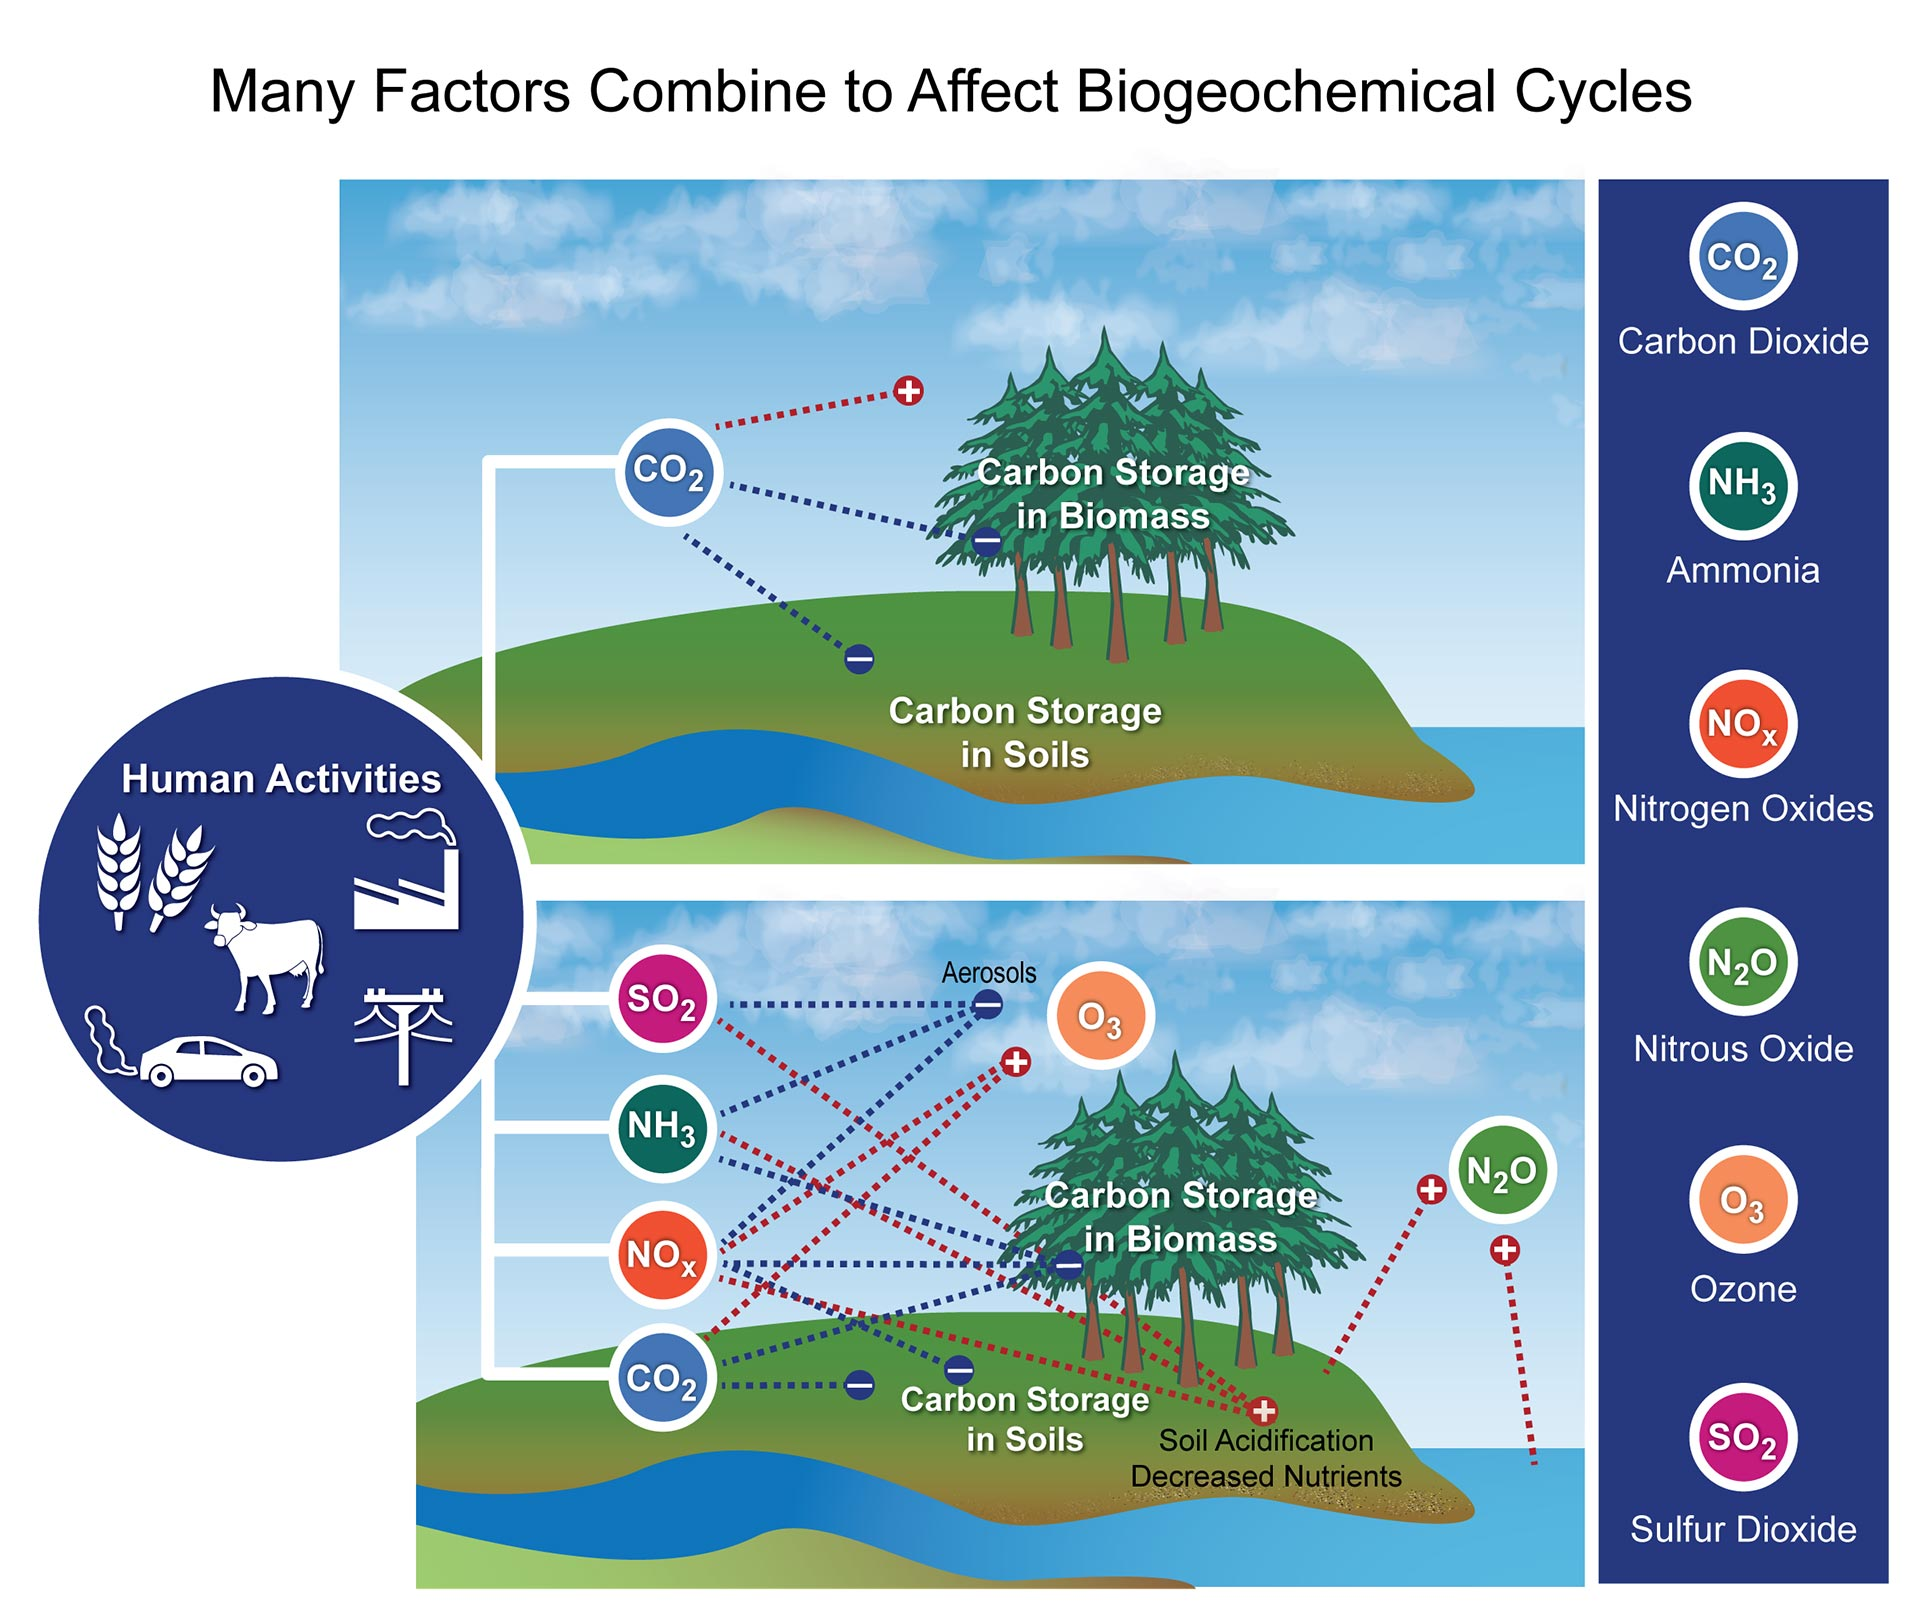 hight resolution of figure 15 4 many factors combine to affect biogeochemical cycles